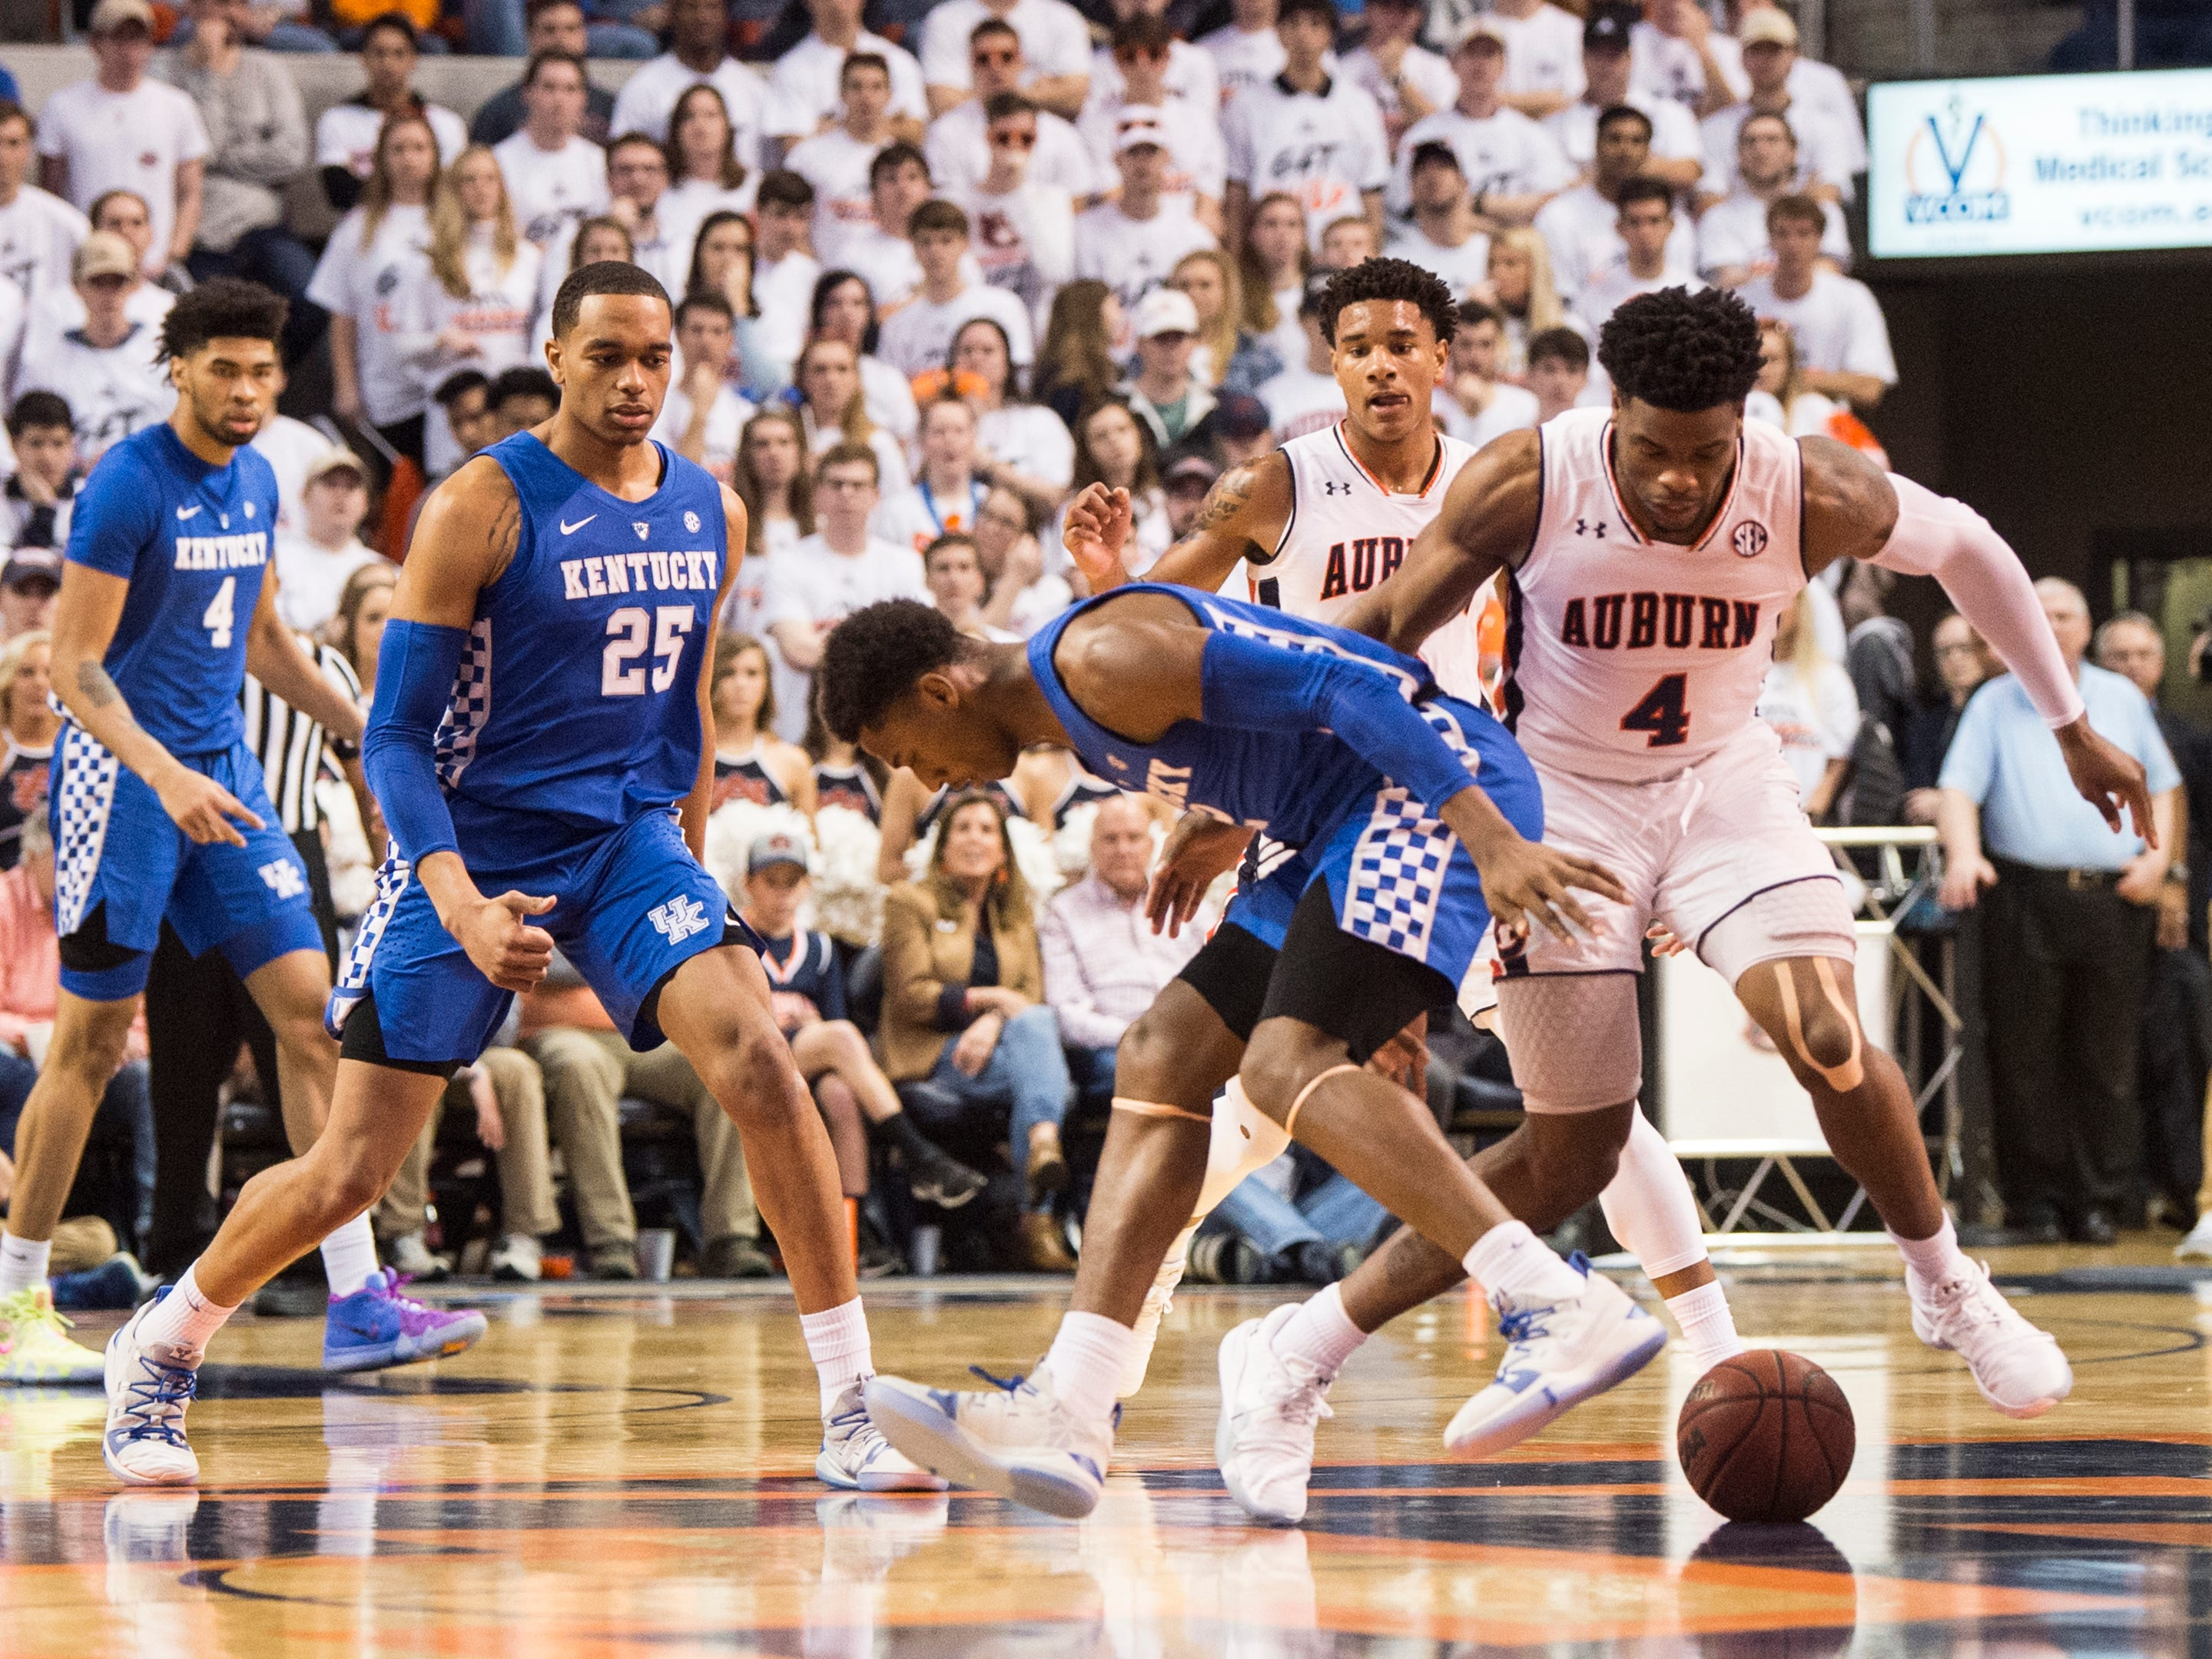 Kentucky guard Ashton Hagans (2) and Auburn guard Malik Dunbar (4) fight for a loose ball at Auburn Arena in Auburn, Ala., on Saturday, Jan. 19, 2019. Kentucky leads Auburn 35-27 at halftime.